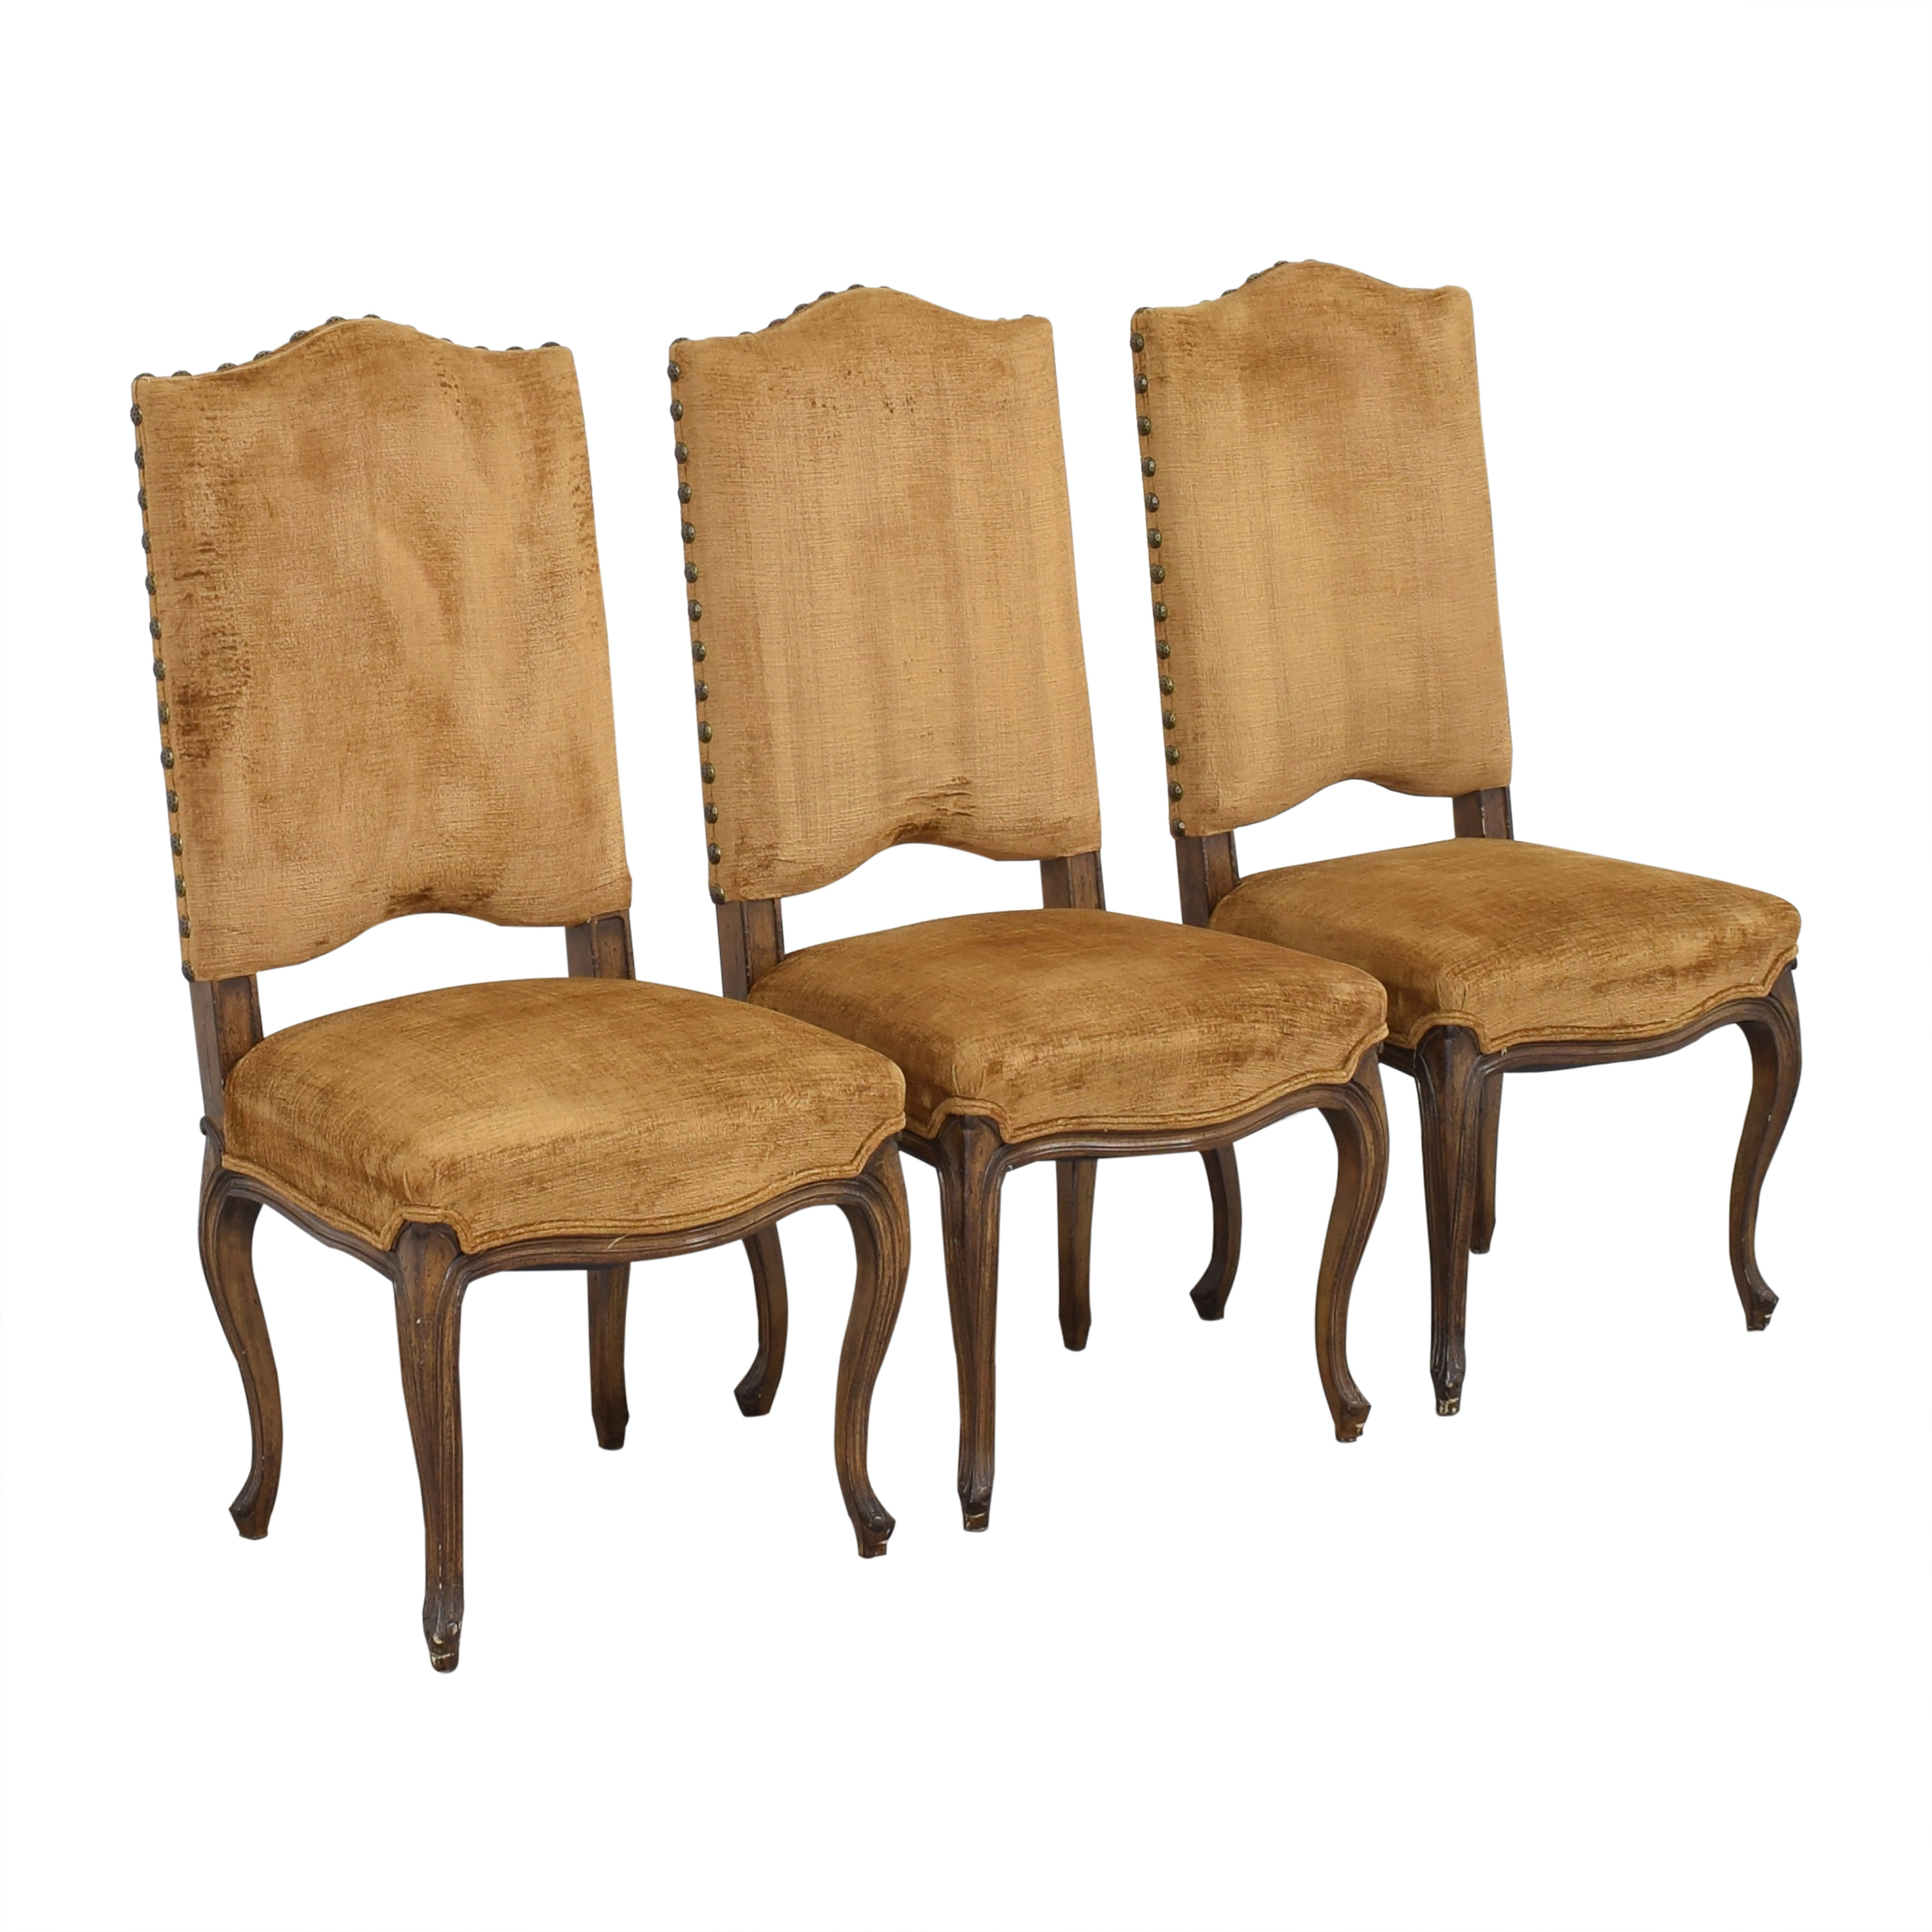 Upholstered Nail Head Dining Chairs / Dining Chairs